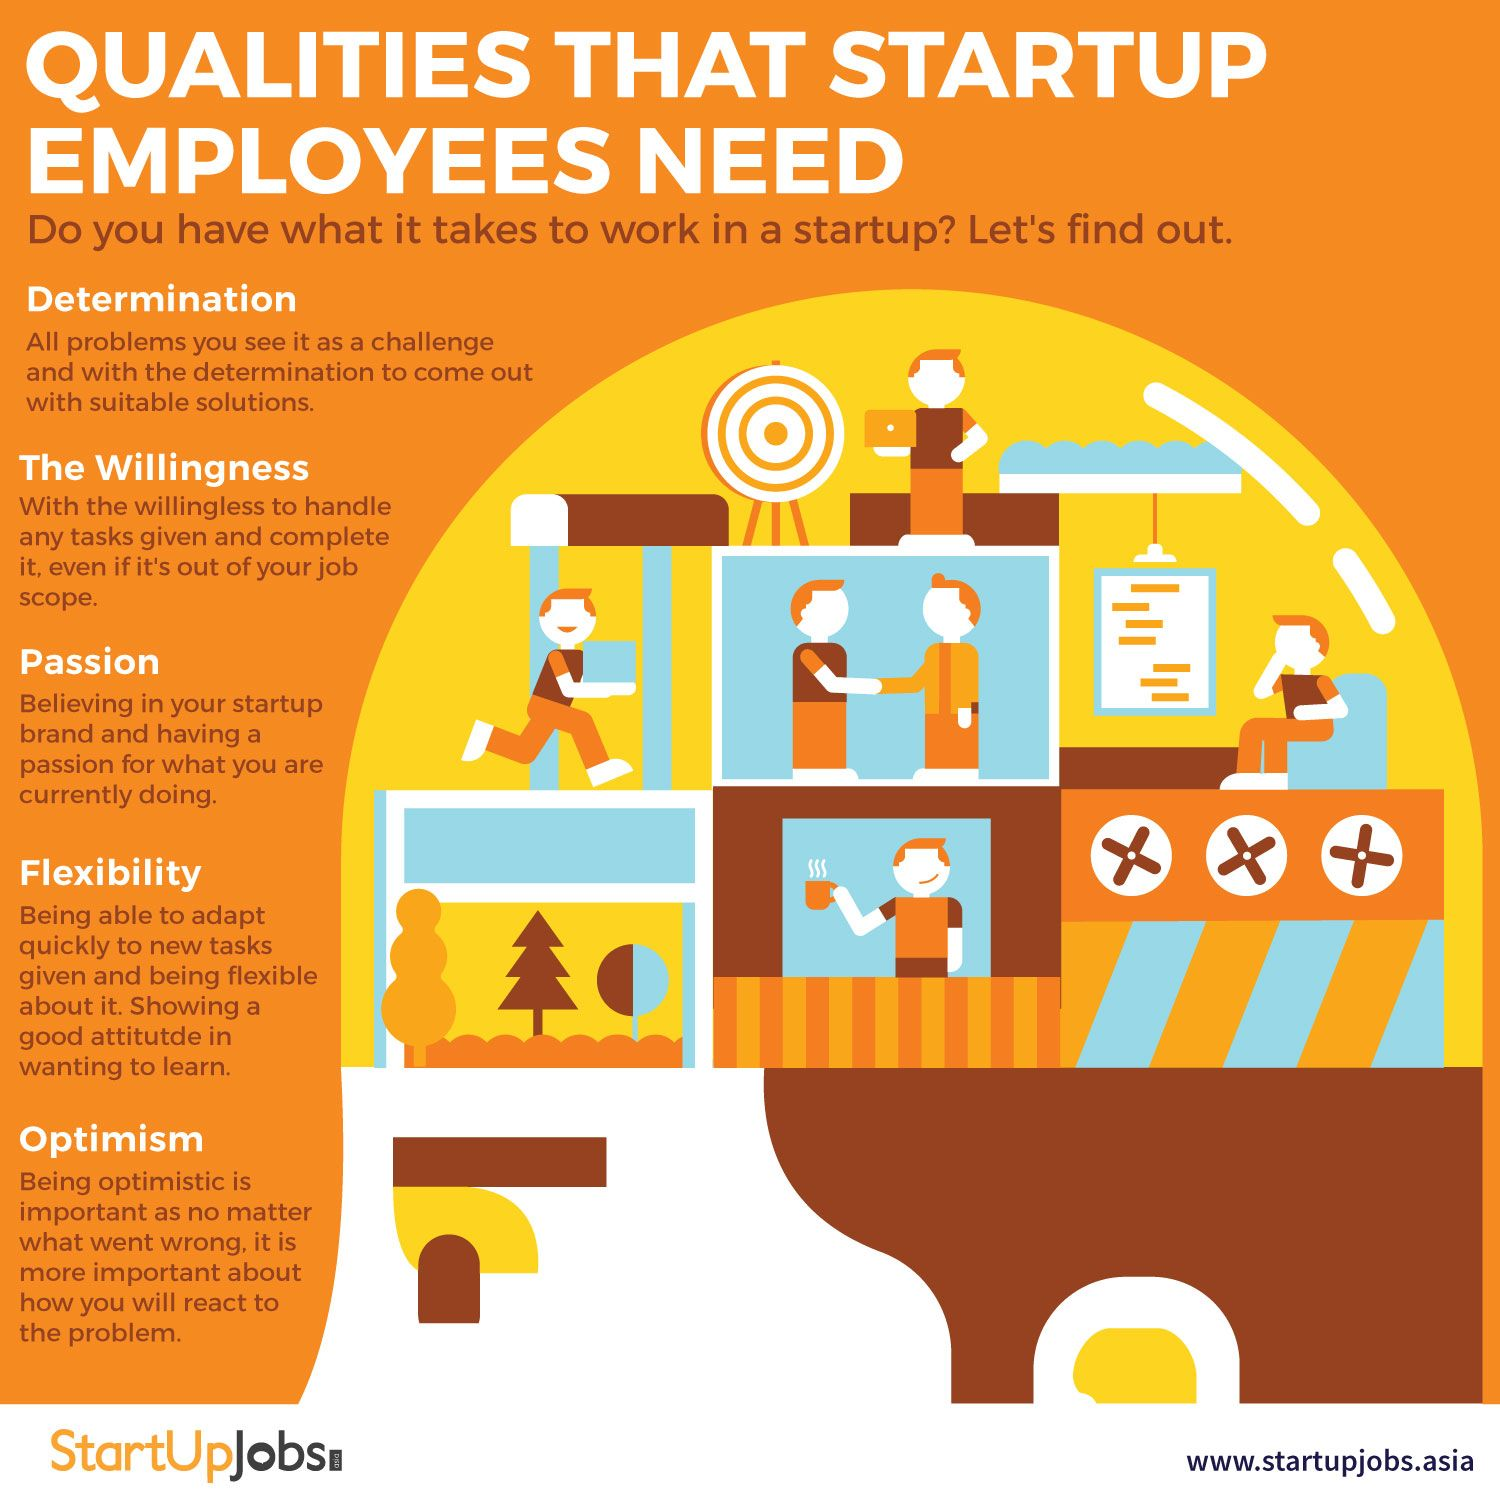 qualities that startup employees need startupjobs qualities that startup employees need startupjobs asia for job opportunities jobs career startup startups employees